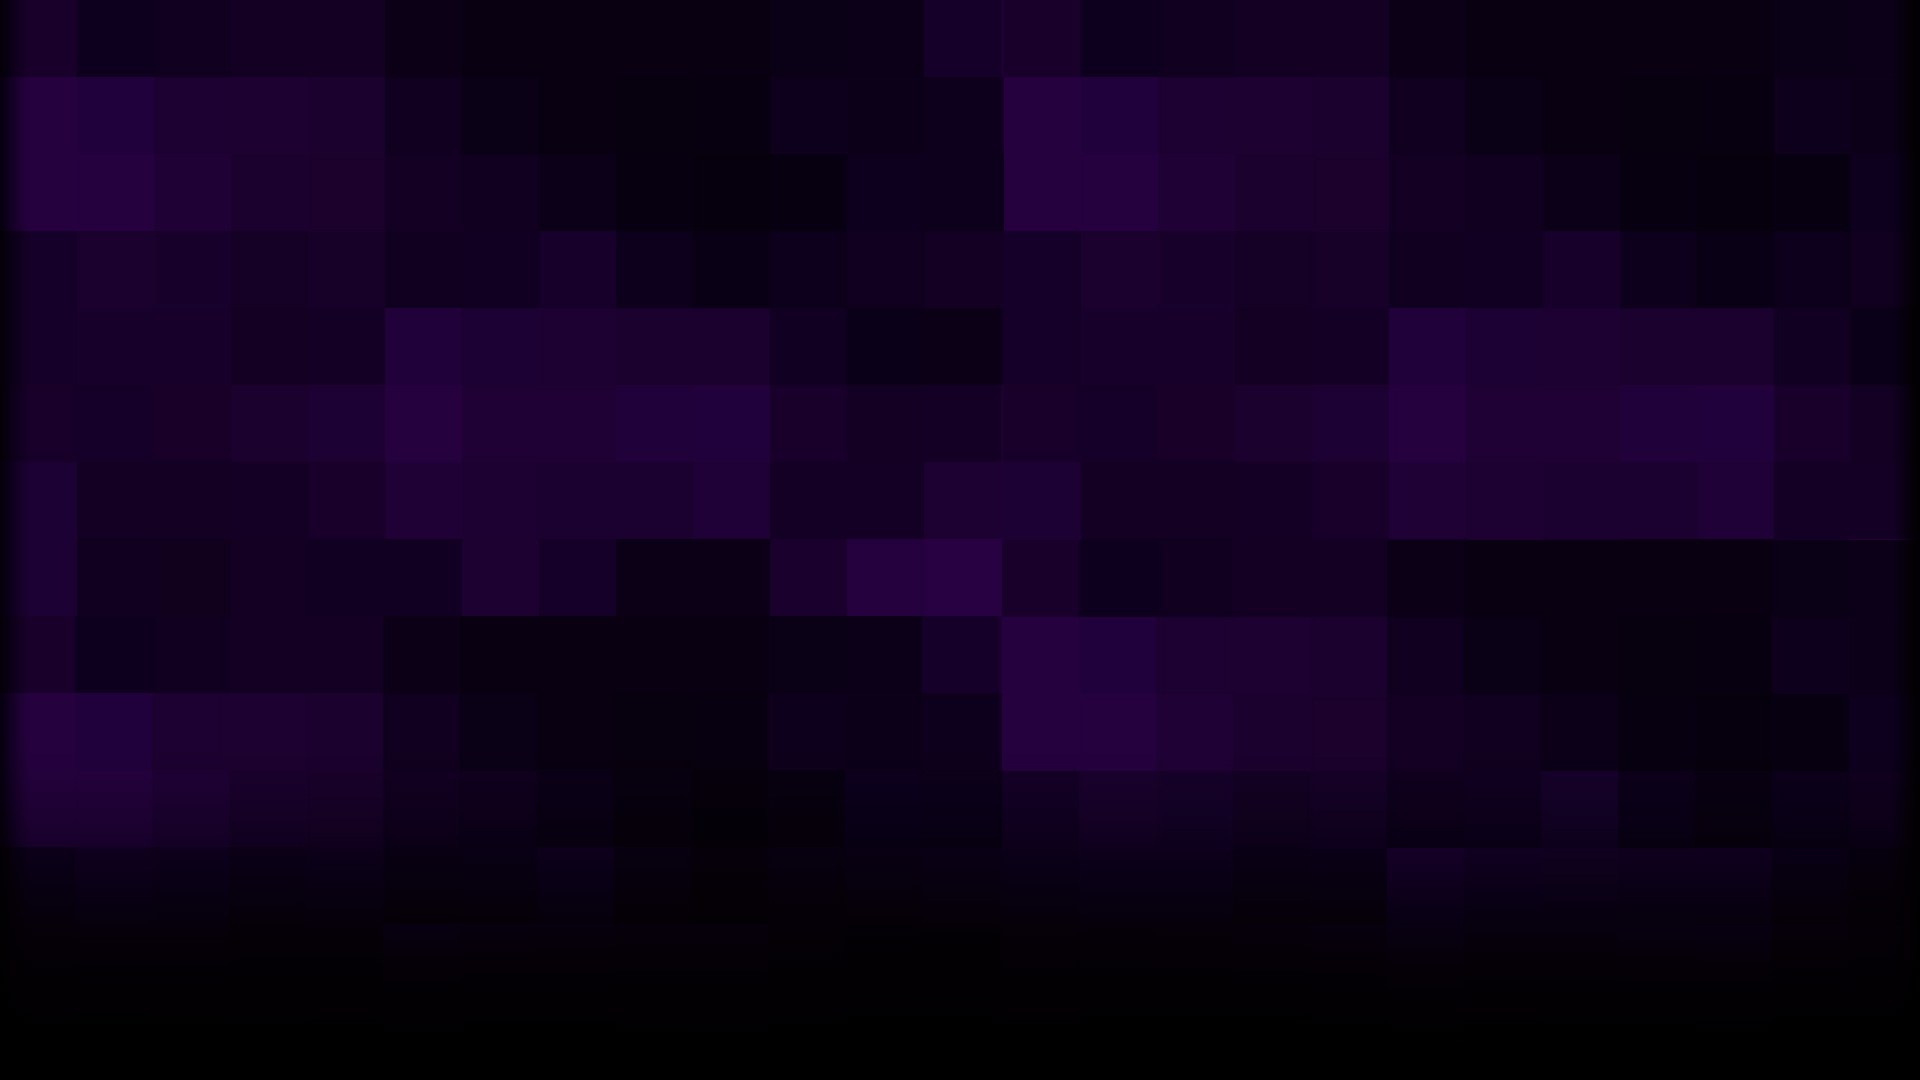 Buy Purple Haze from Steam Payment from PayPal Webmoney 1920x1080